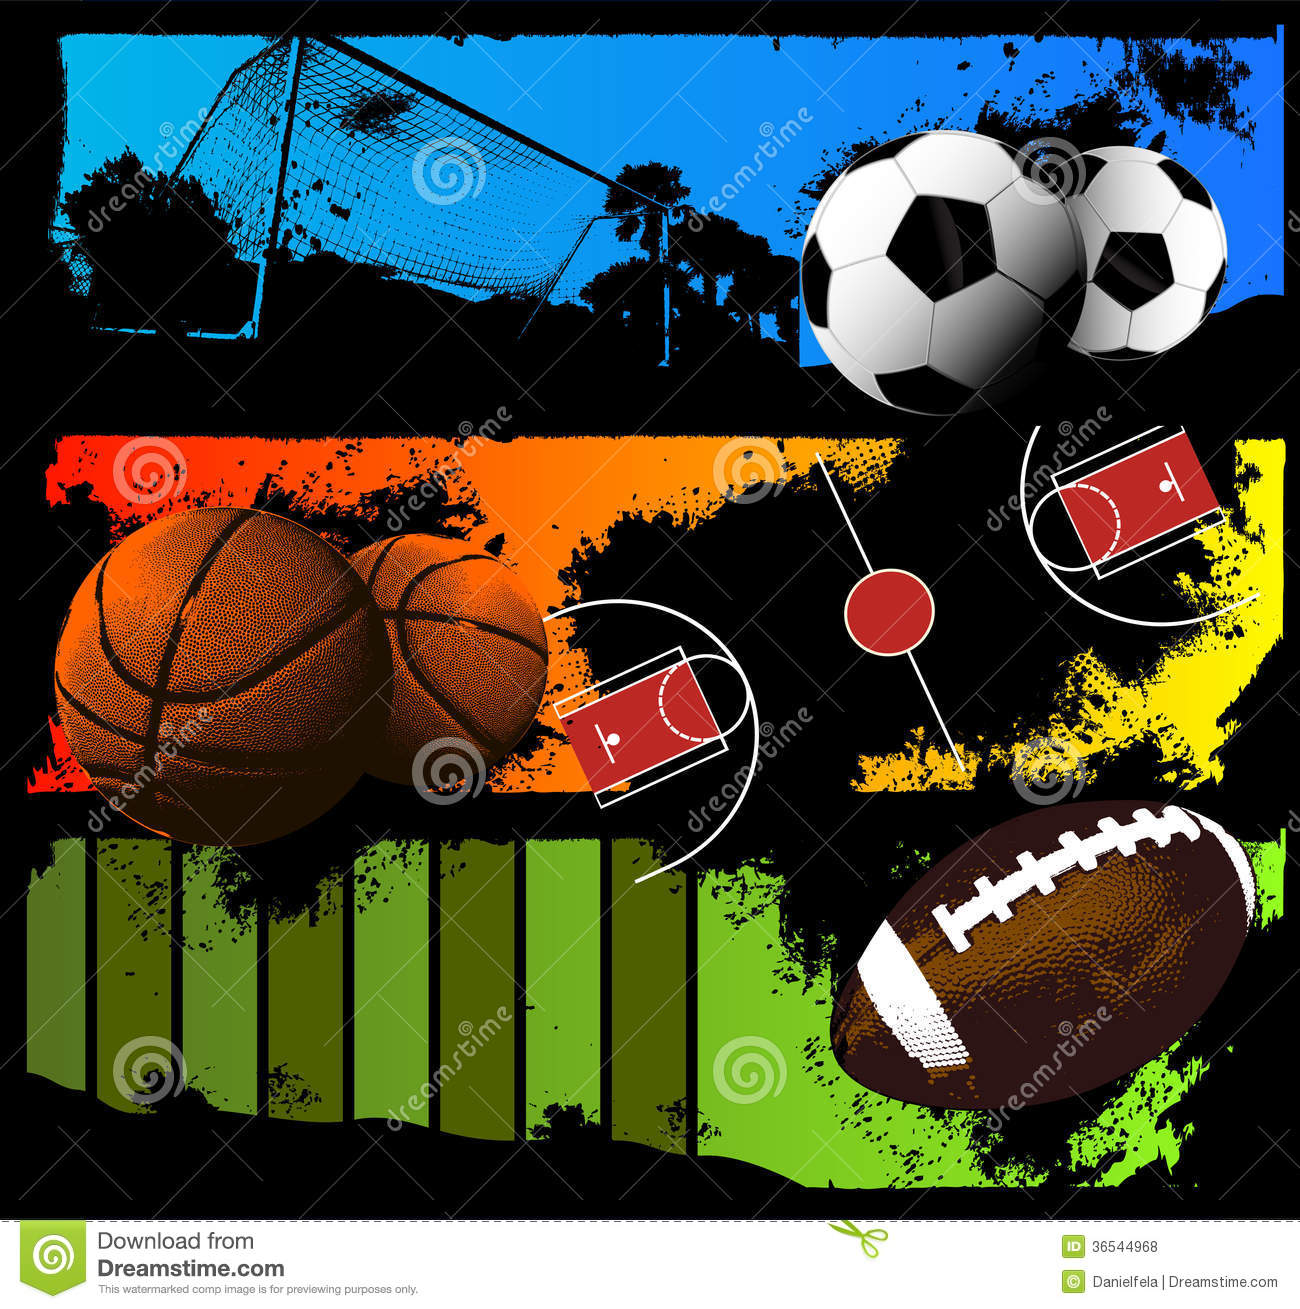 A comparison of basketball and football two major sports